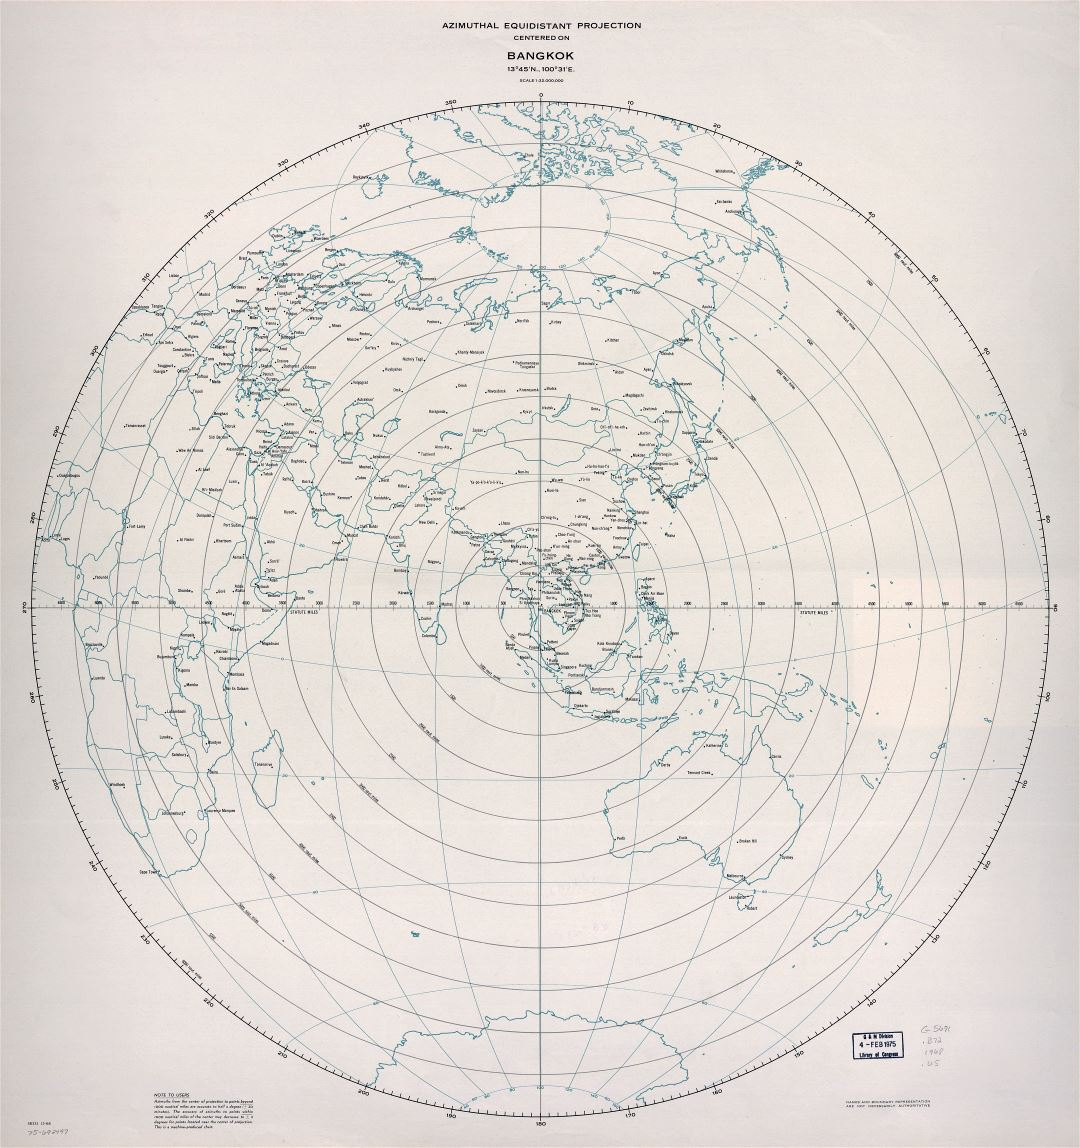 Large detailed azimuthal equidistant projection map centered on Bangkok - 1968